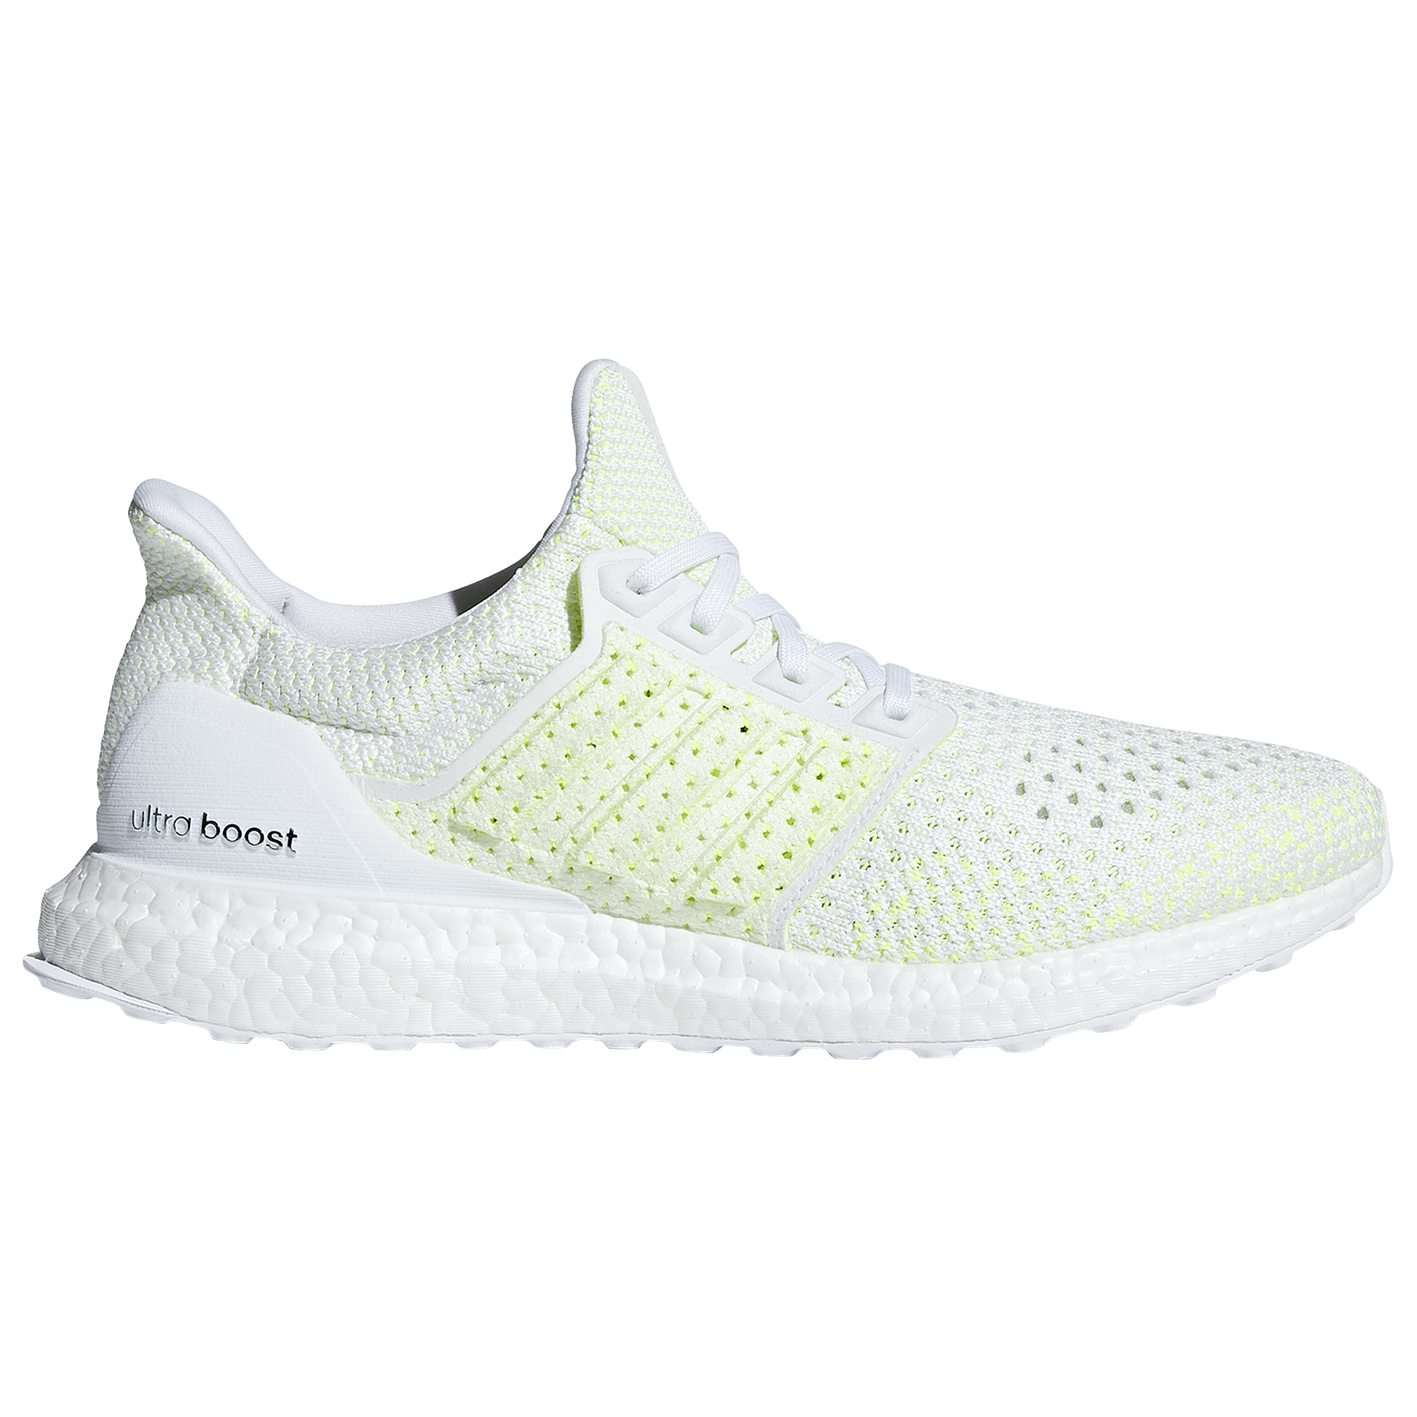 026f0c98b adidas Ultraboost Clima - Men s - Running - Shoes - Footwear White ...